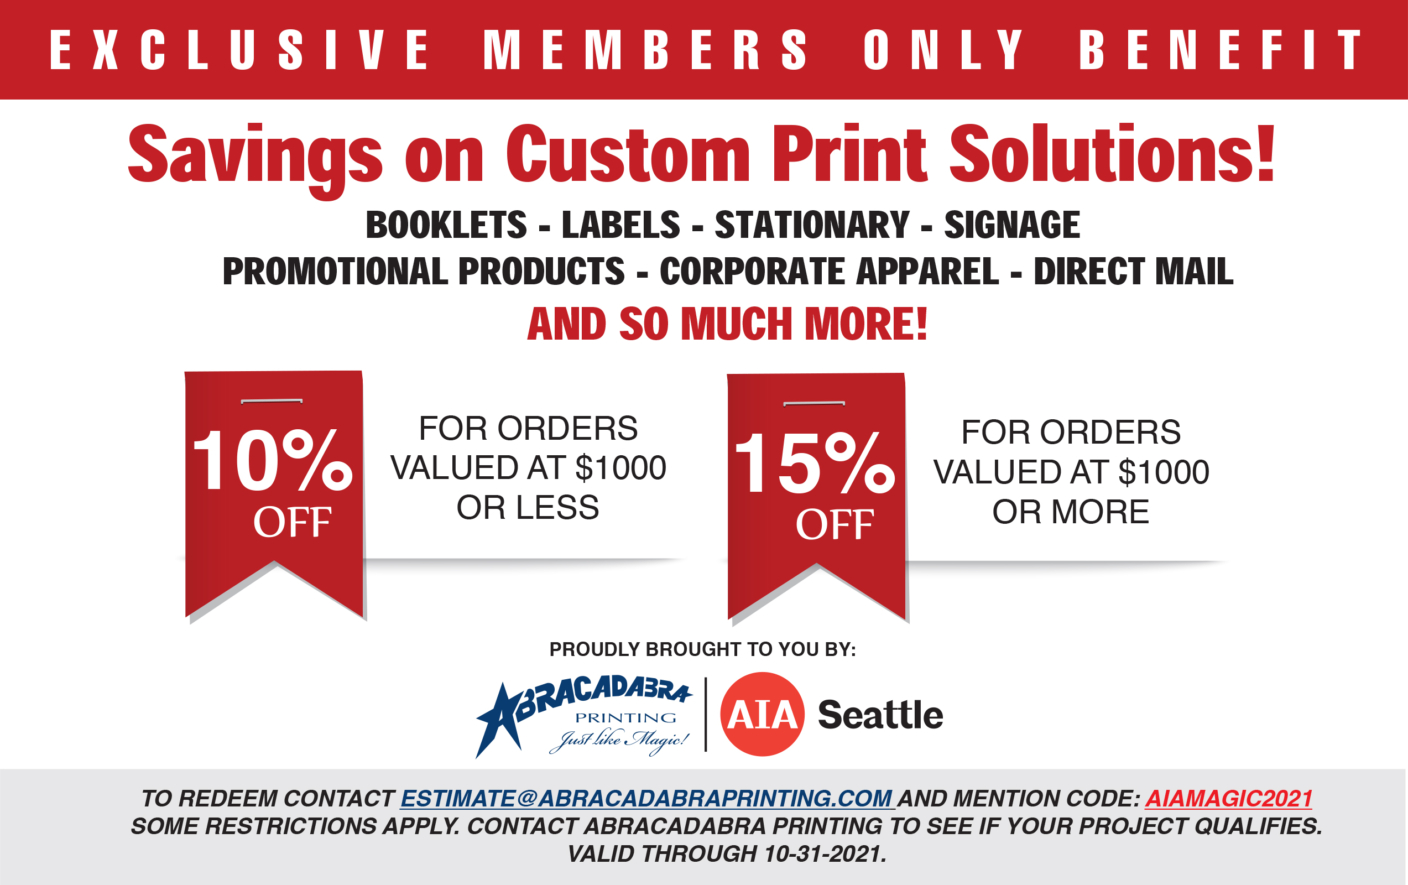 Abracadabra Printing - AIA Seattle Member Firm Discount